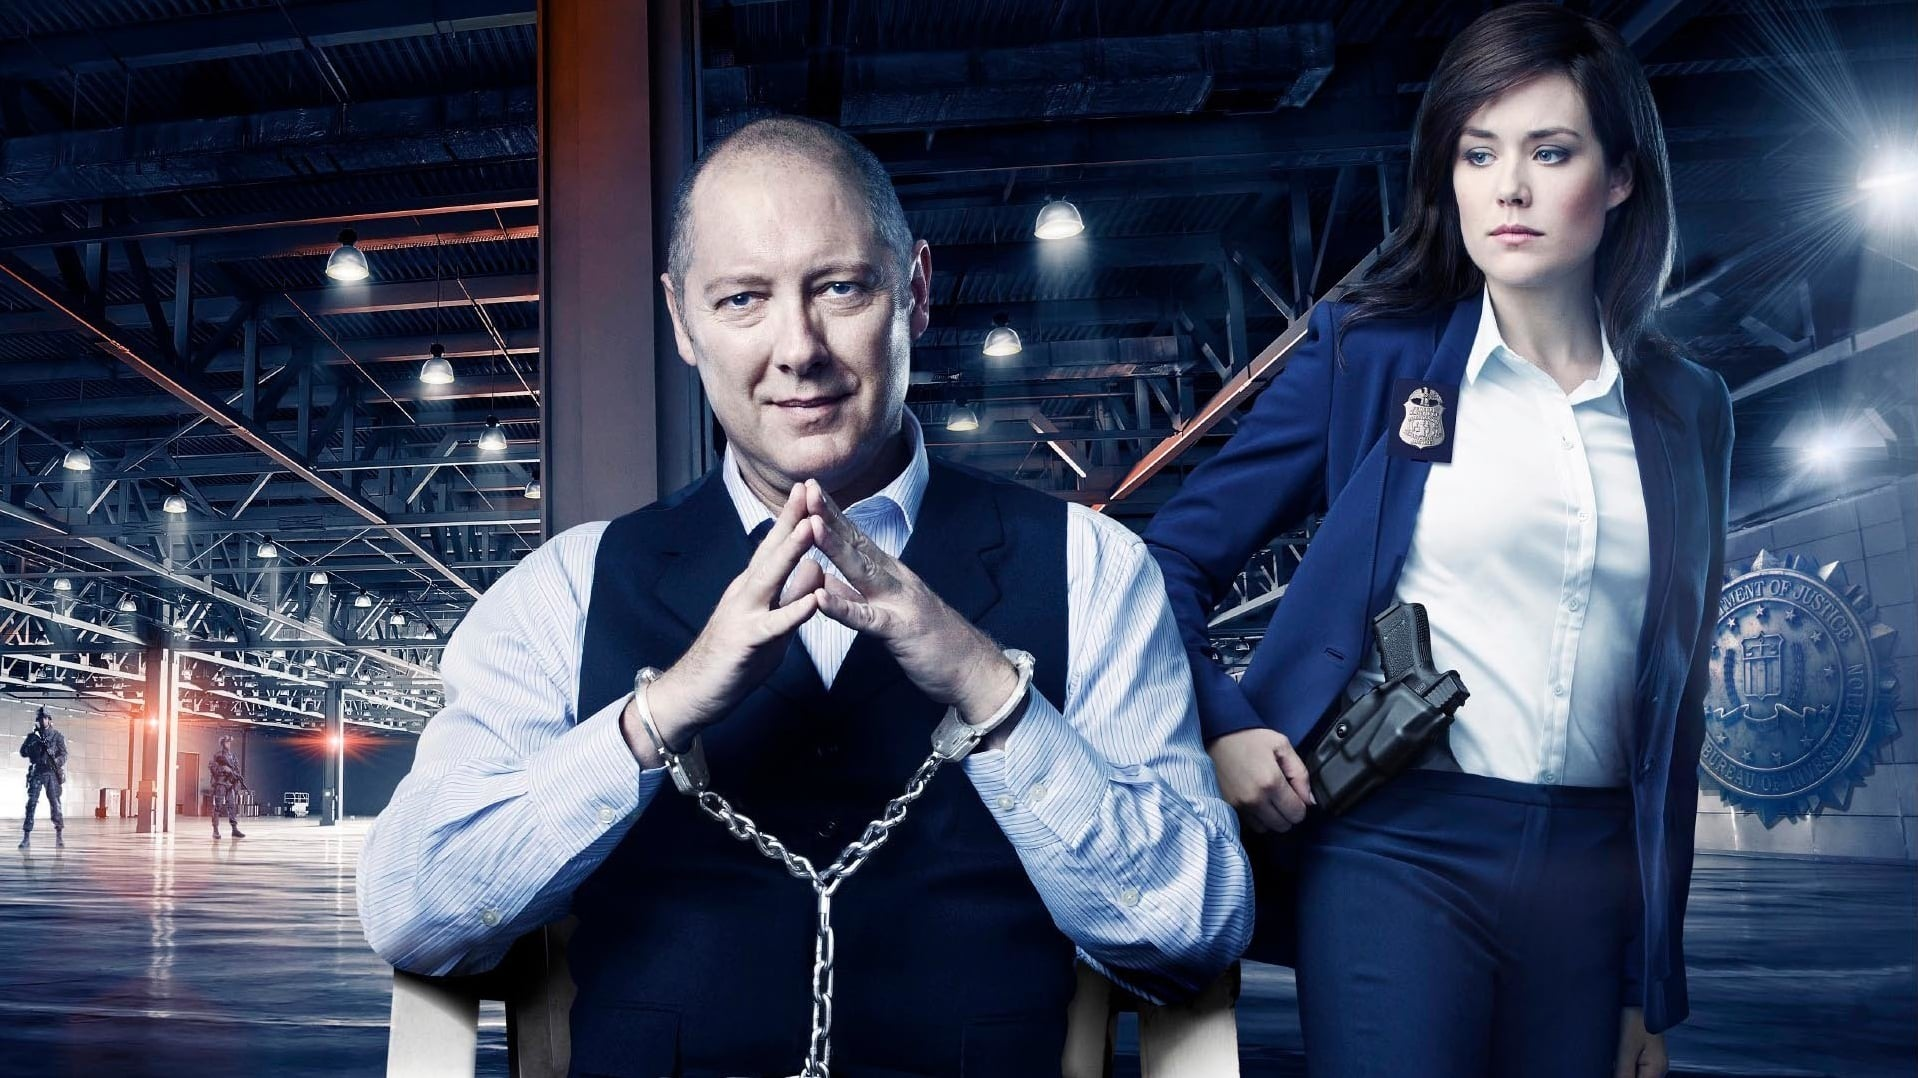 The Blacklist - Season 0 Episode 1 : The Chosen One